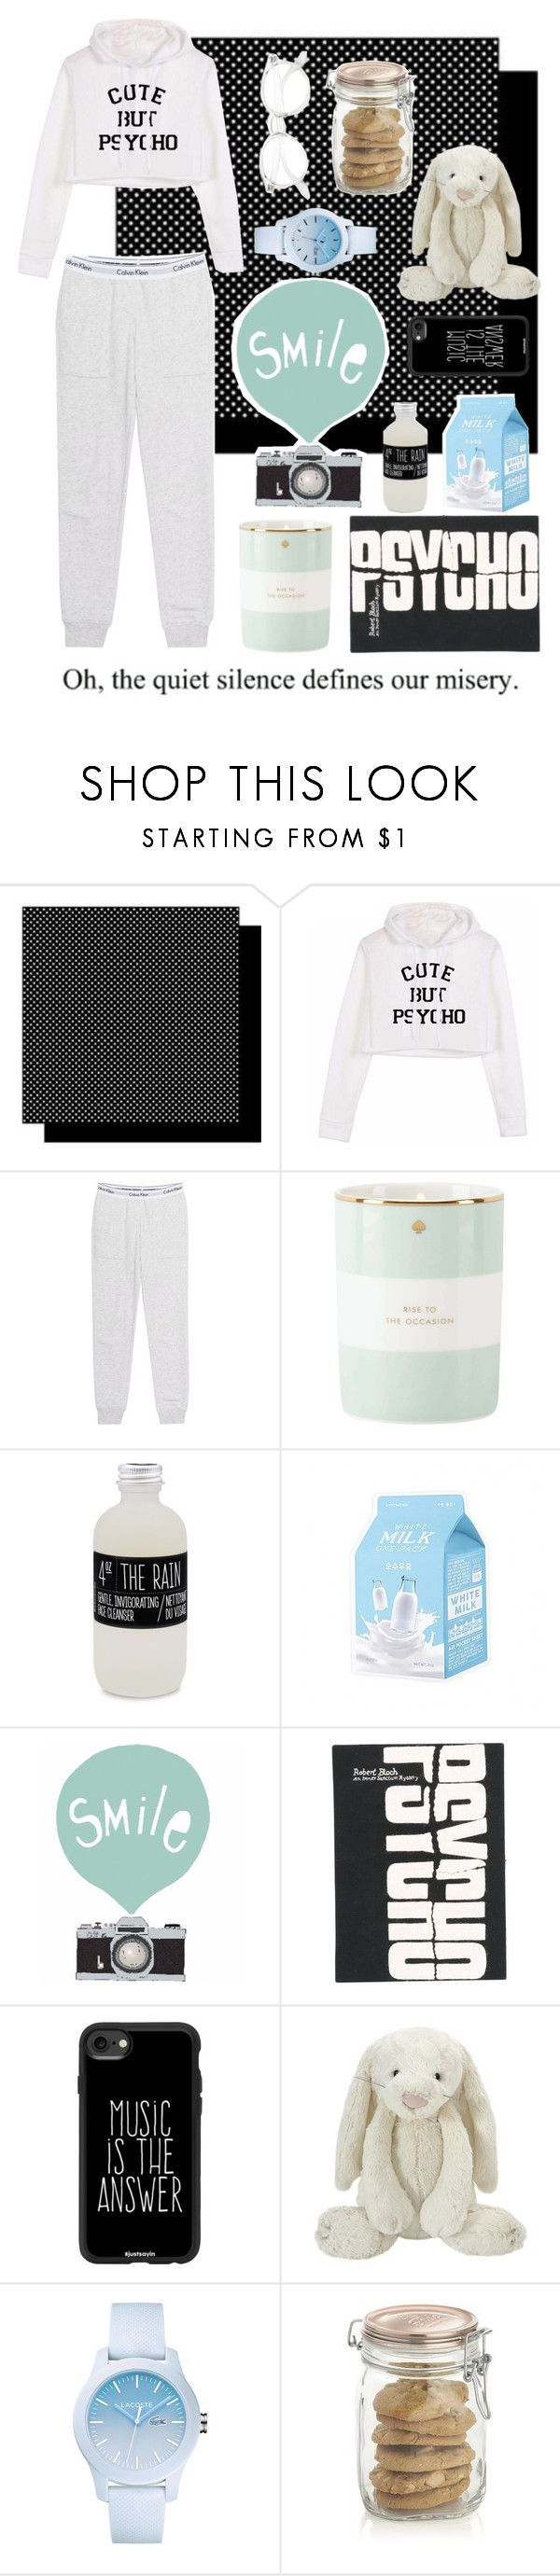 """Cute But Psycho"" by beautyguru-secrets on Polyvore featuring Calvin Klein Jeans, Kate Spade, Belmondo, Seventy Tree, Olympia Le-Tan, Casetify, Laura Ashley, Lacoste and Crate and Barrel"